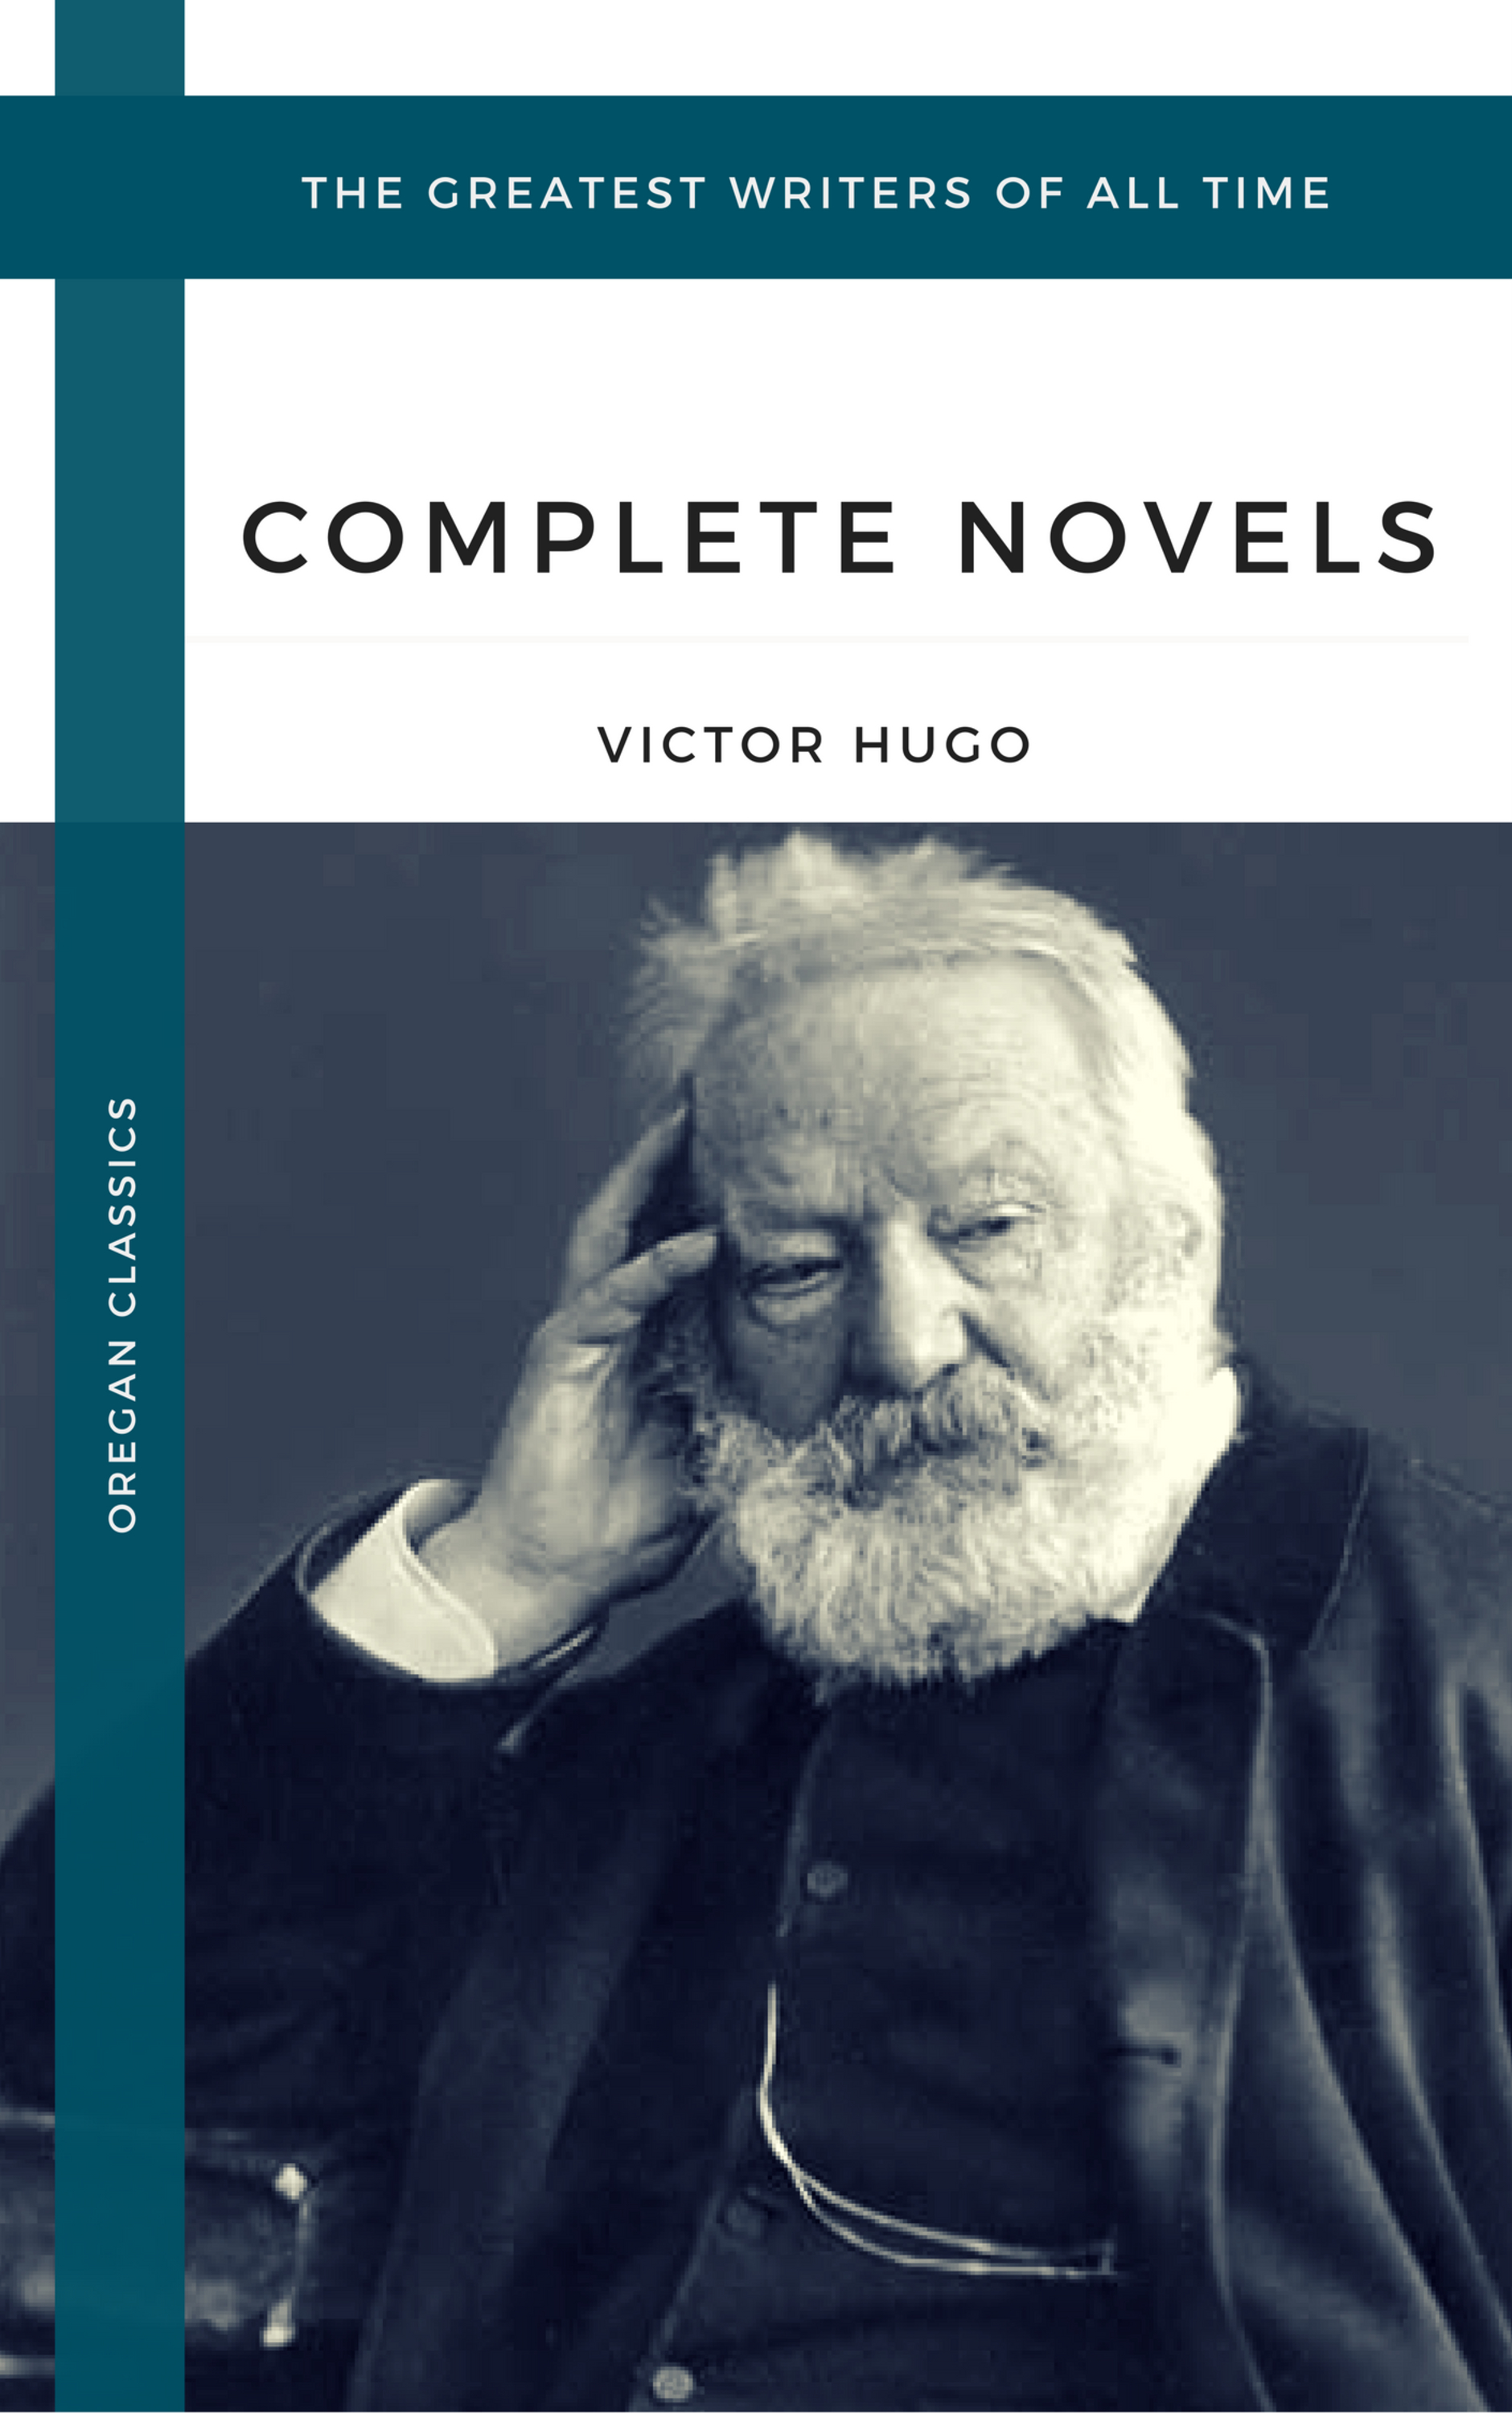 hugo victor the complete novels oregan classics the greatest writers of all time